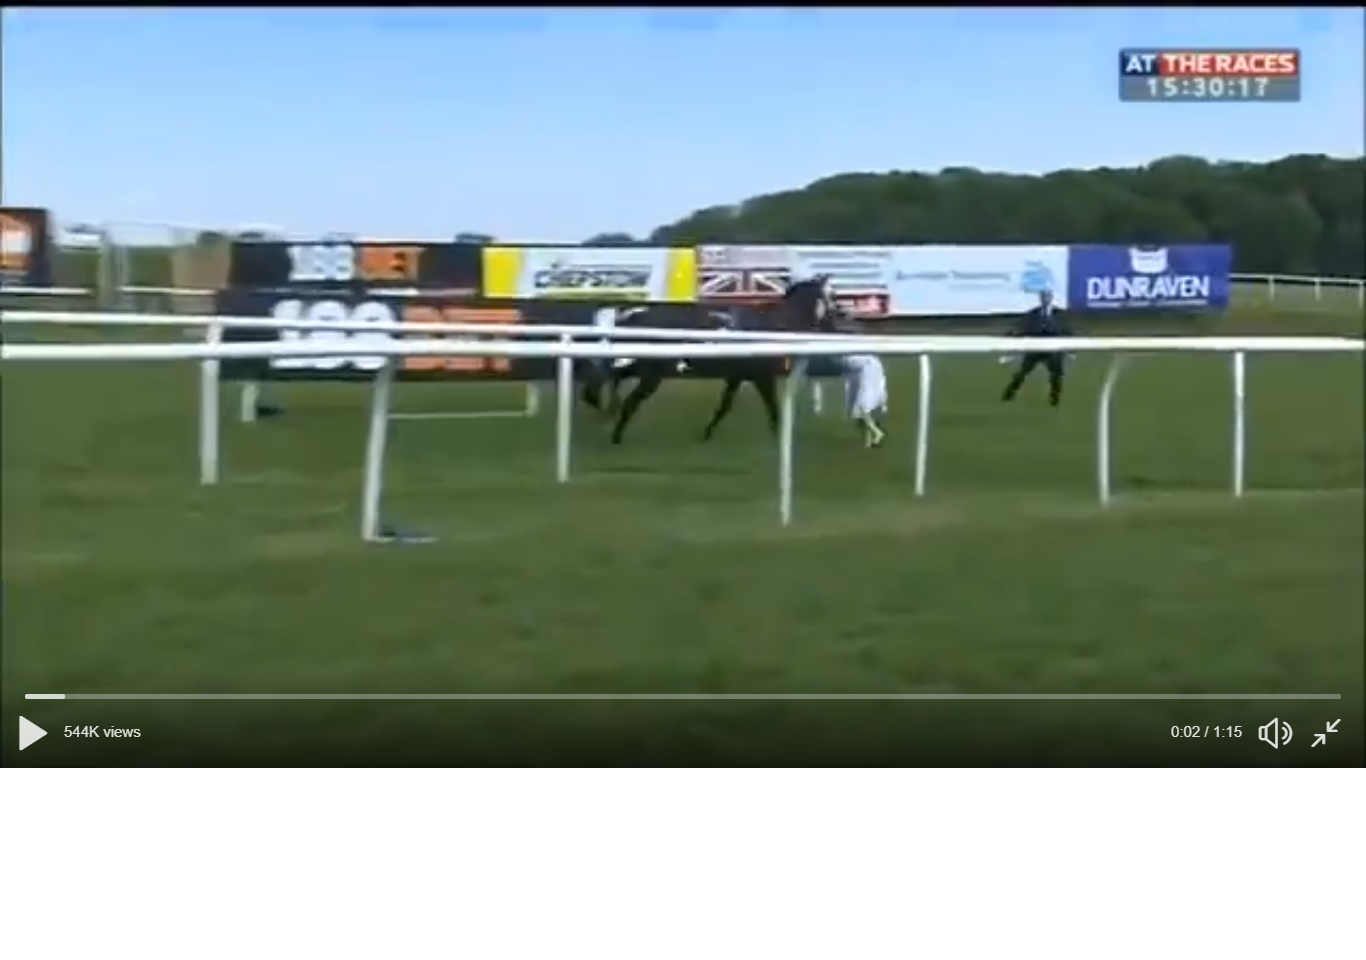 A screenshot of the video. Picture: At The Races